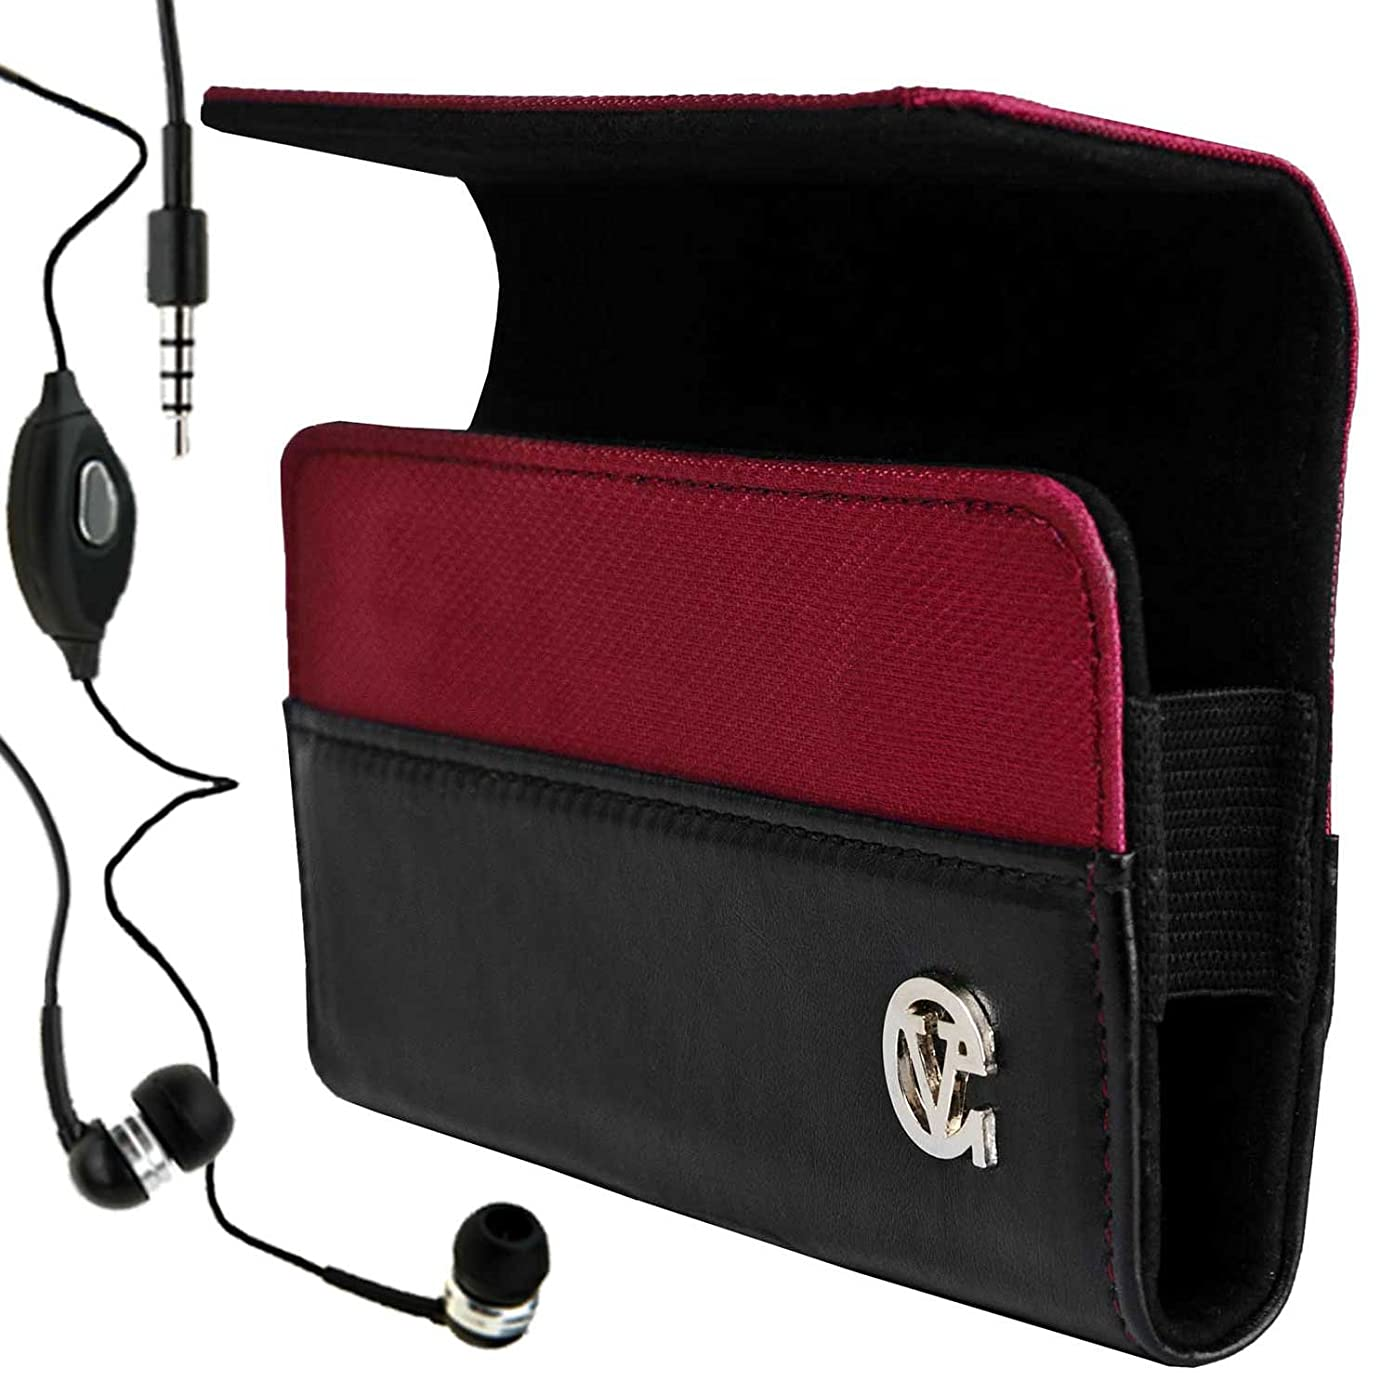 Portola Candy Apple Red Hard Cover HTC Explorer Leather Case for HTC Explorer 4G Android Phone (Explorer , Pico , Unlocked Phone , All Models) + Compatible HTC Explorer Earbud Earphones with Microphone